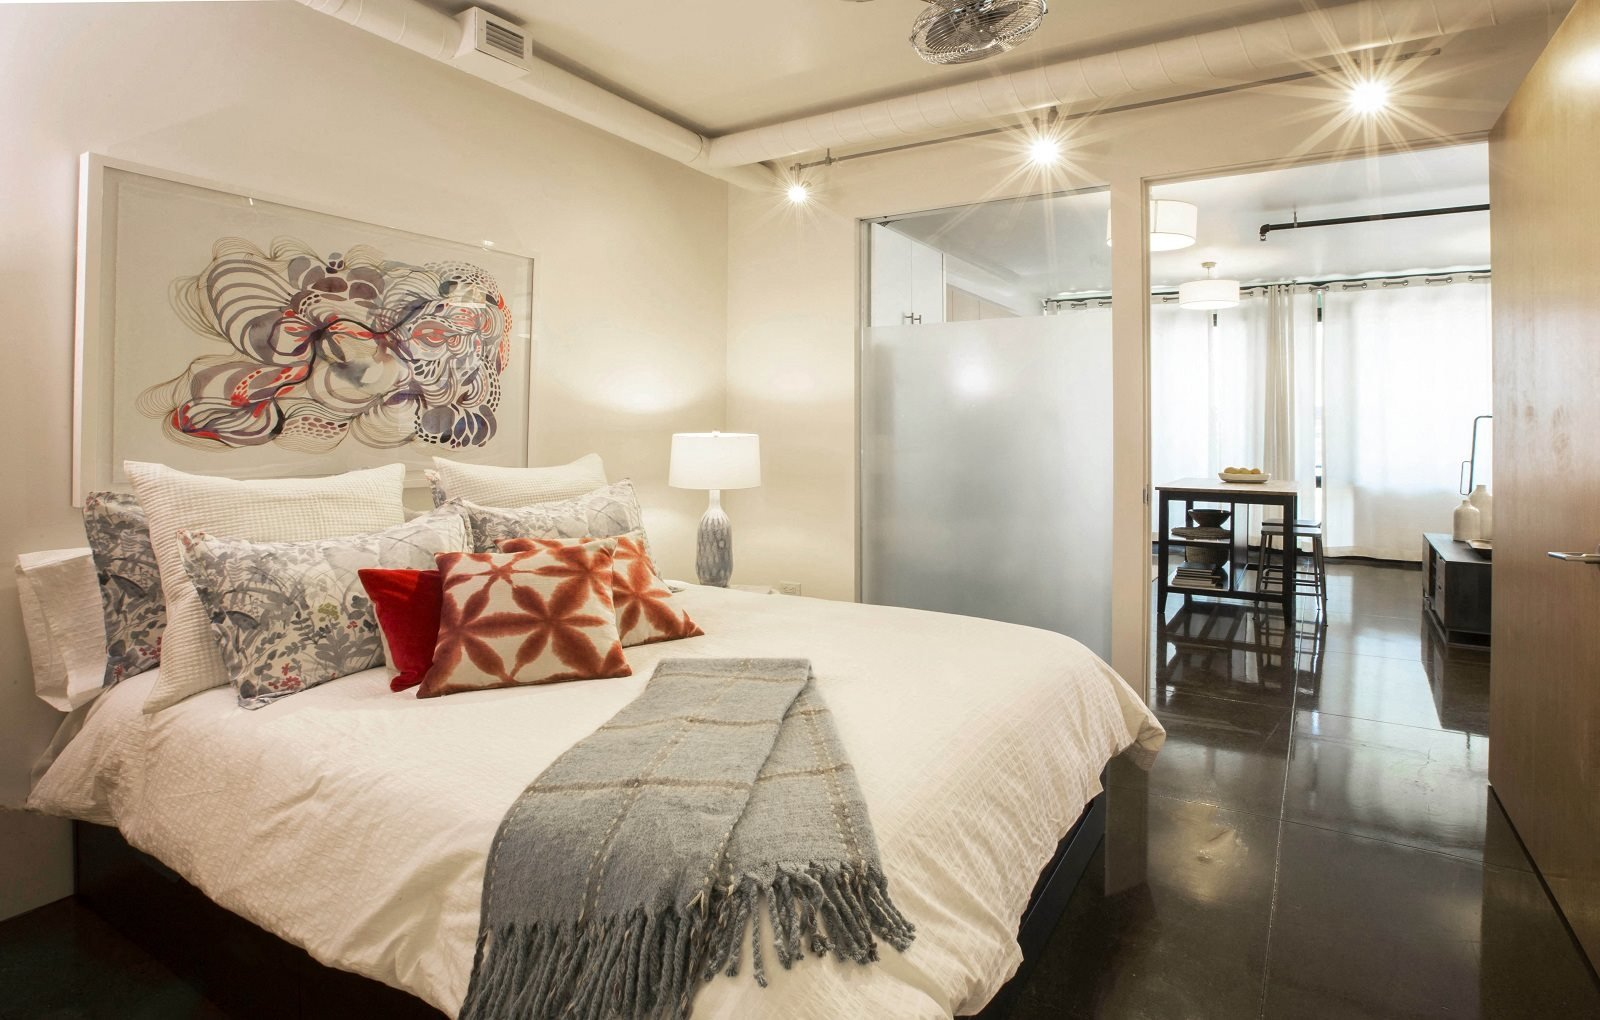 Live in Cozy Bedrooms at Potrero Launch, California